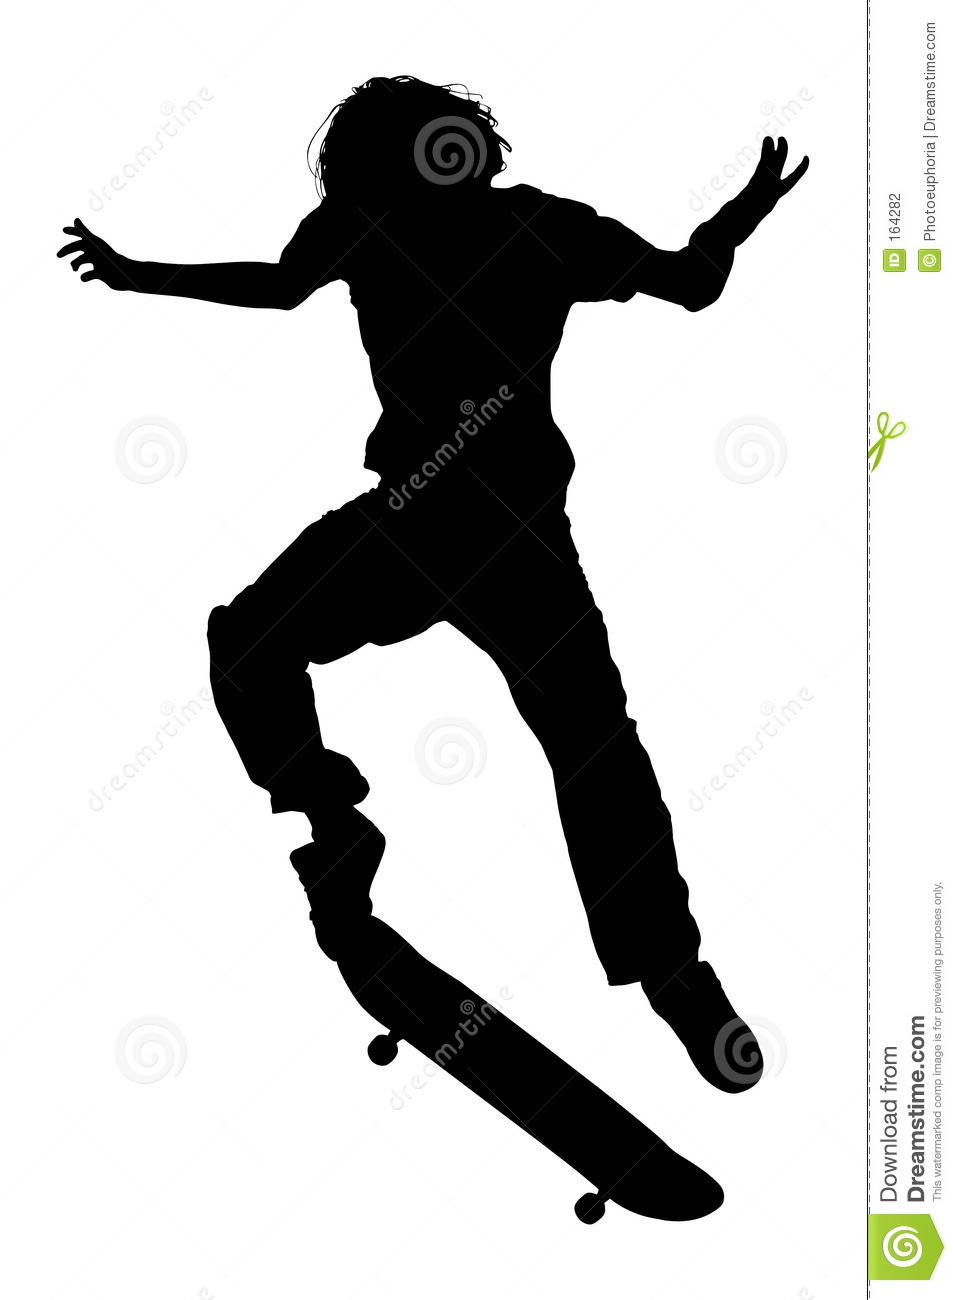 Silhouette With Clipping Path Of Teen Boy On Skateboard Jumping Stock